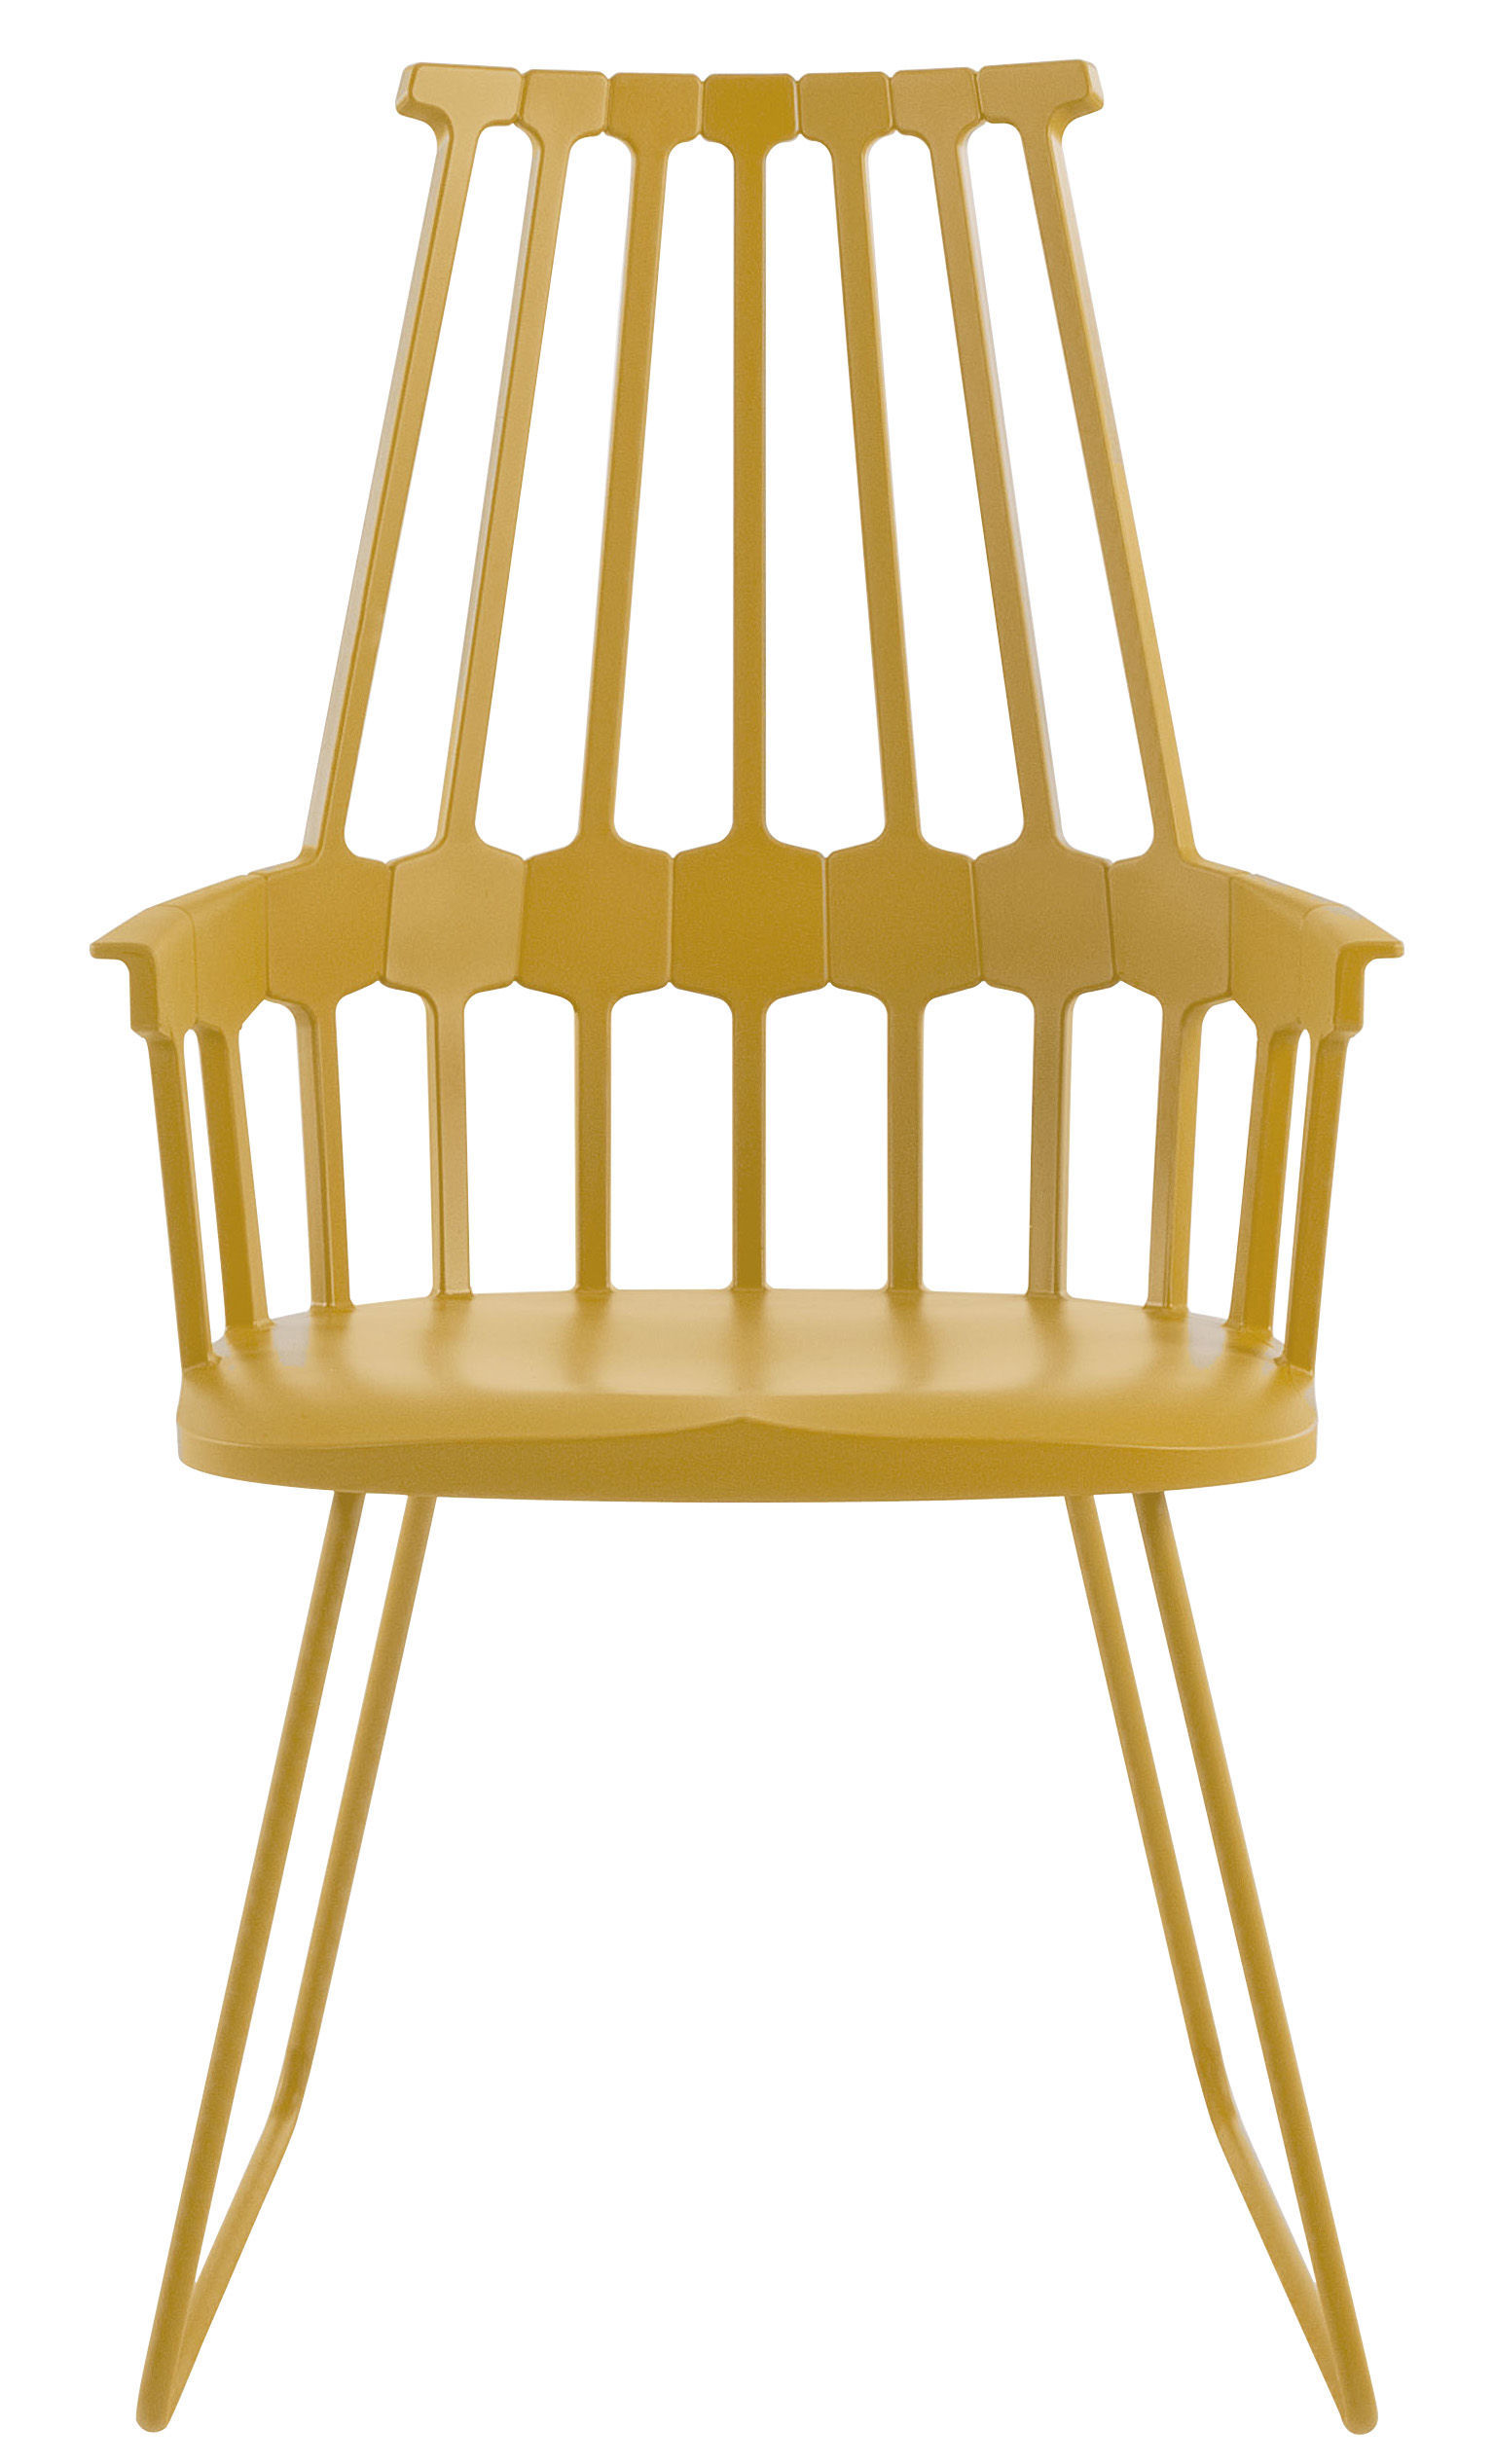 Furniture - Comback Armchair - Polycarbonate & metal sledge leg by Kartell - Yellow - Polycarbonate, Steel